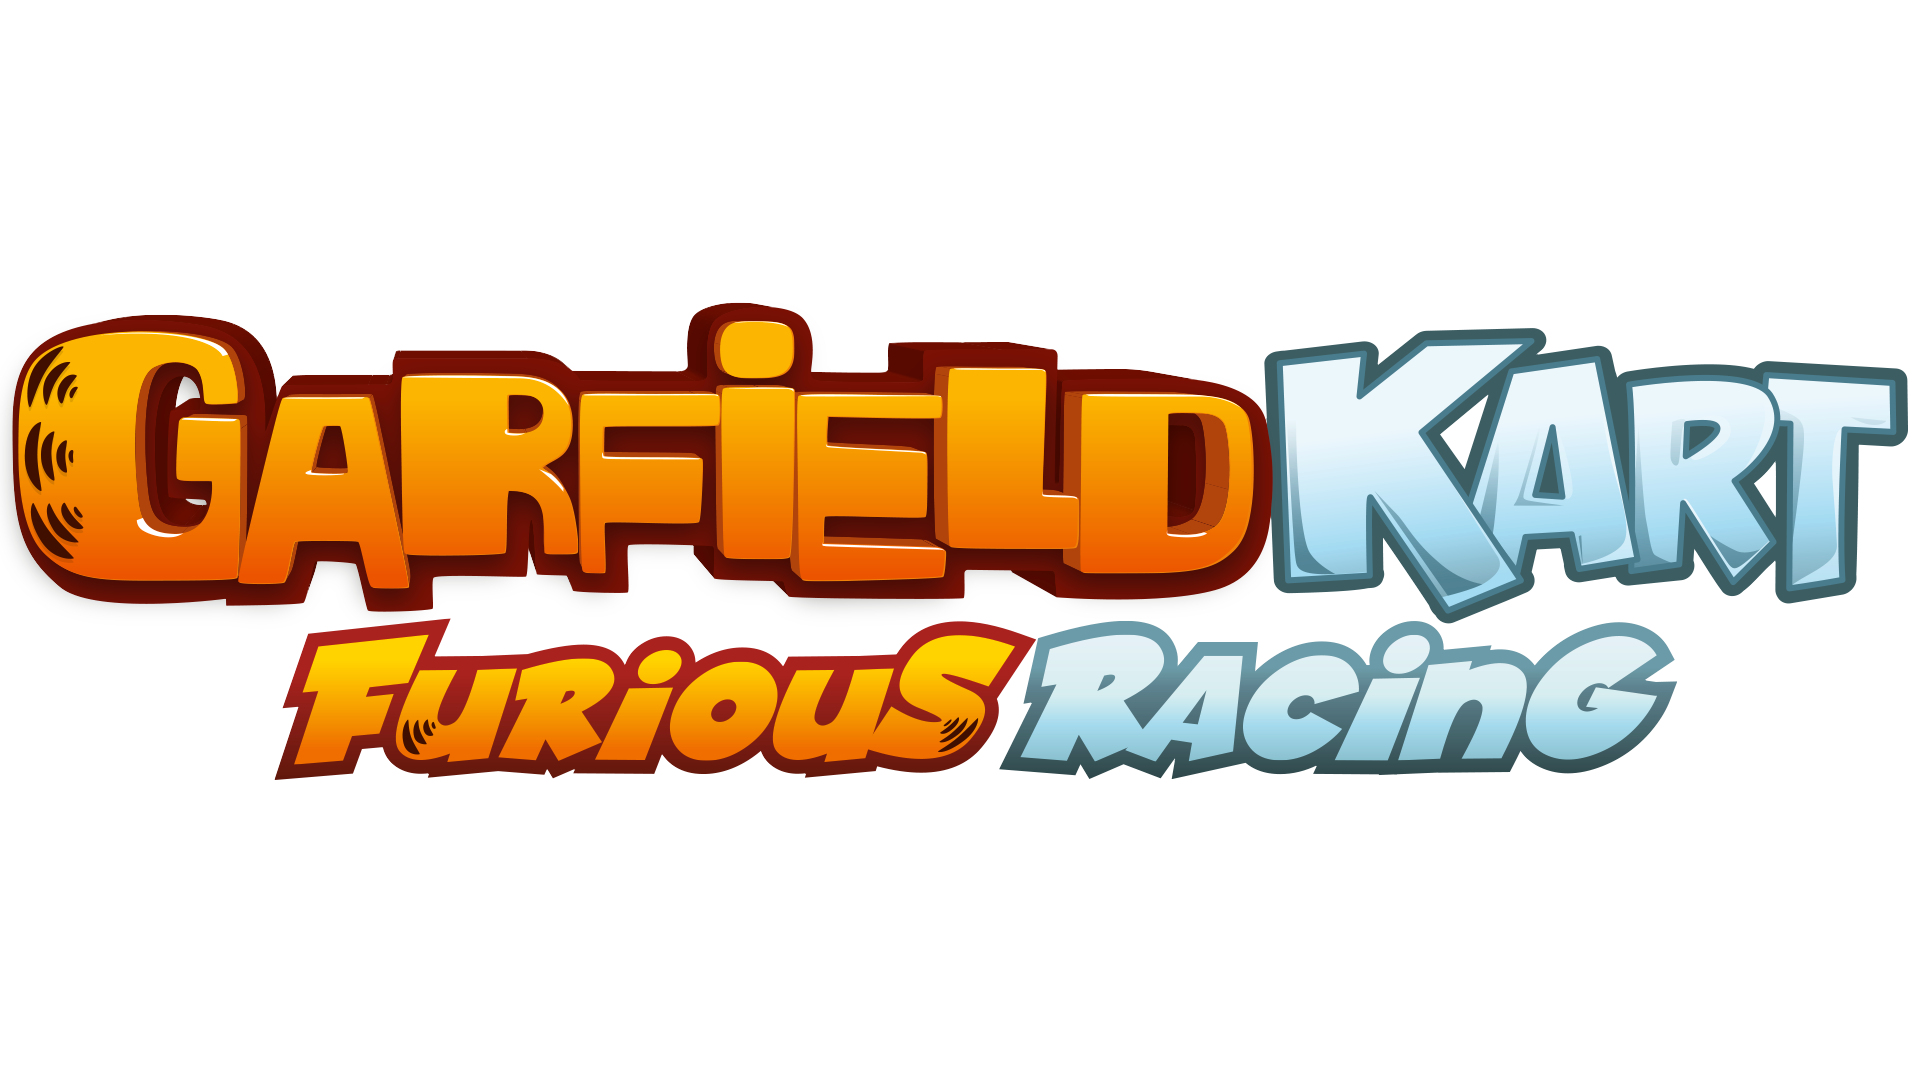 Garfield Kart Furious Racing Desktop Wallpaper 1920x1080